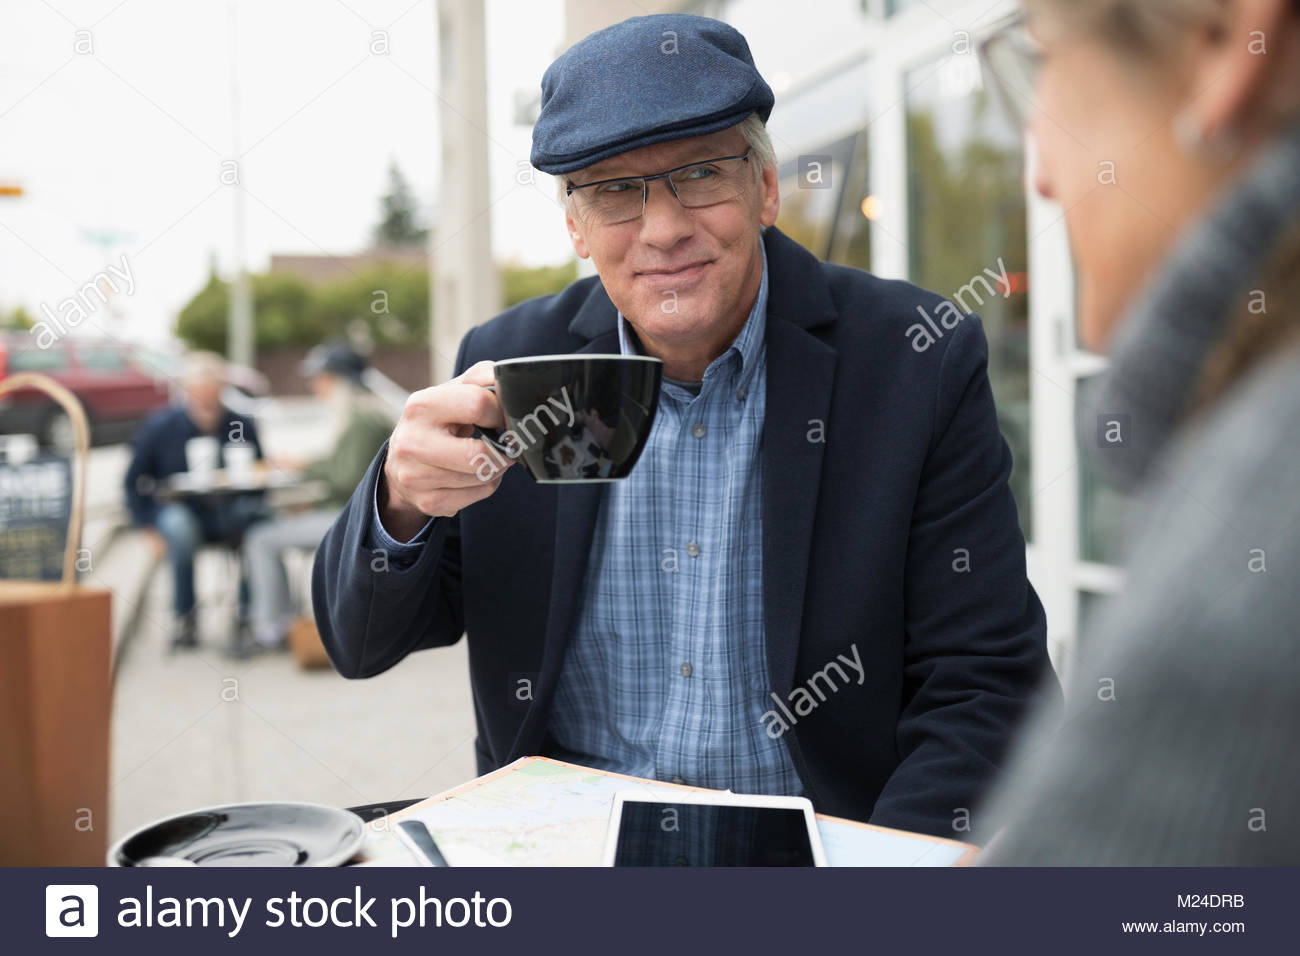 Senior man drinking coffee and talking to wife at sidewalk cafe - Stock Image